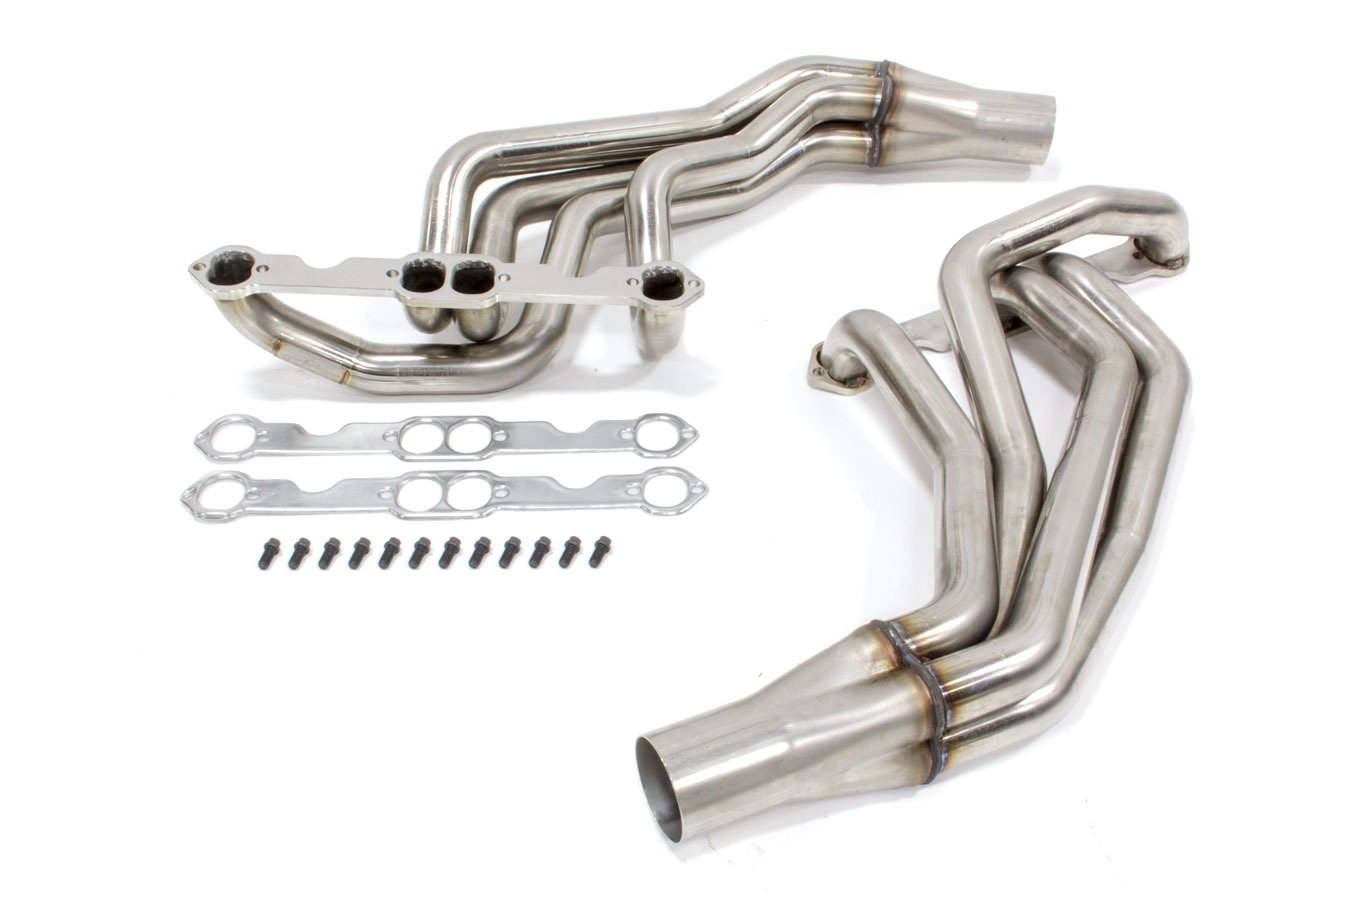 Kooks Headers 28202400 Headers, Long Tube, 1-7/8 in Primary, 3 in Collector, Stainless, Natural, Small Block Chevy, GM Fullsize Truck 1967-91, Kit